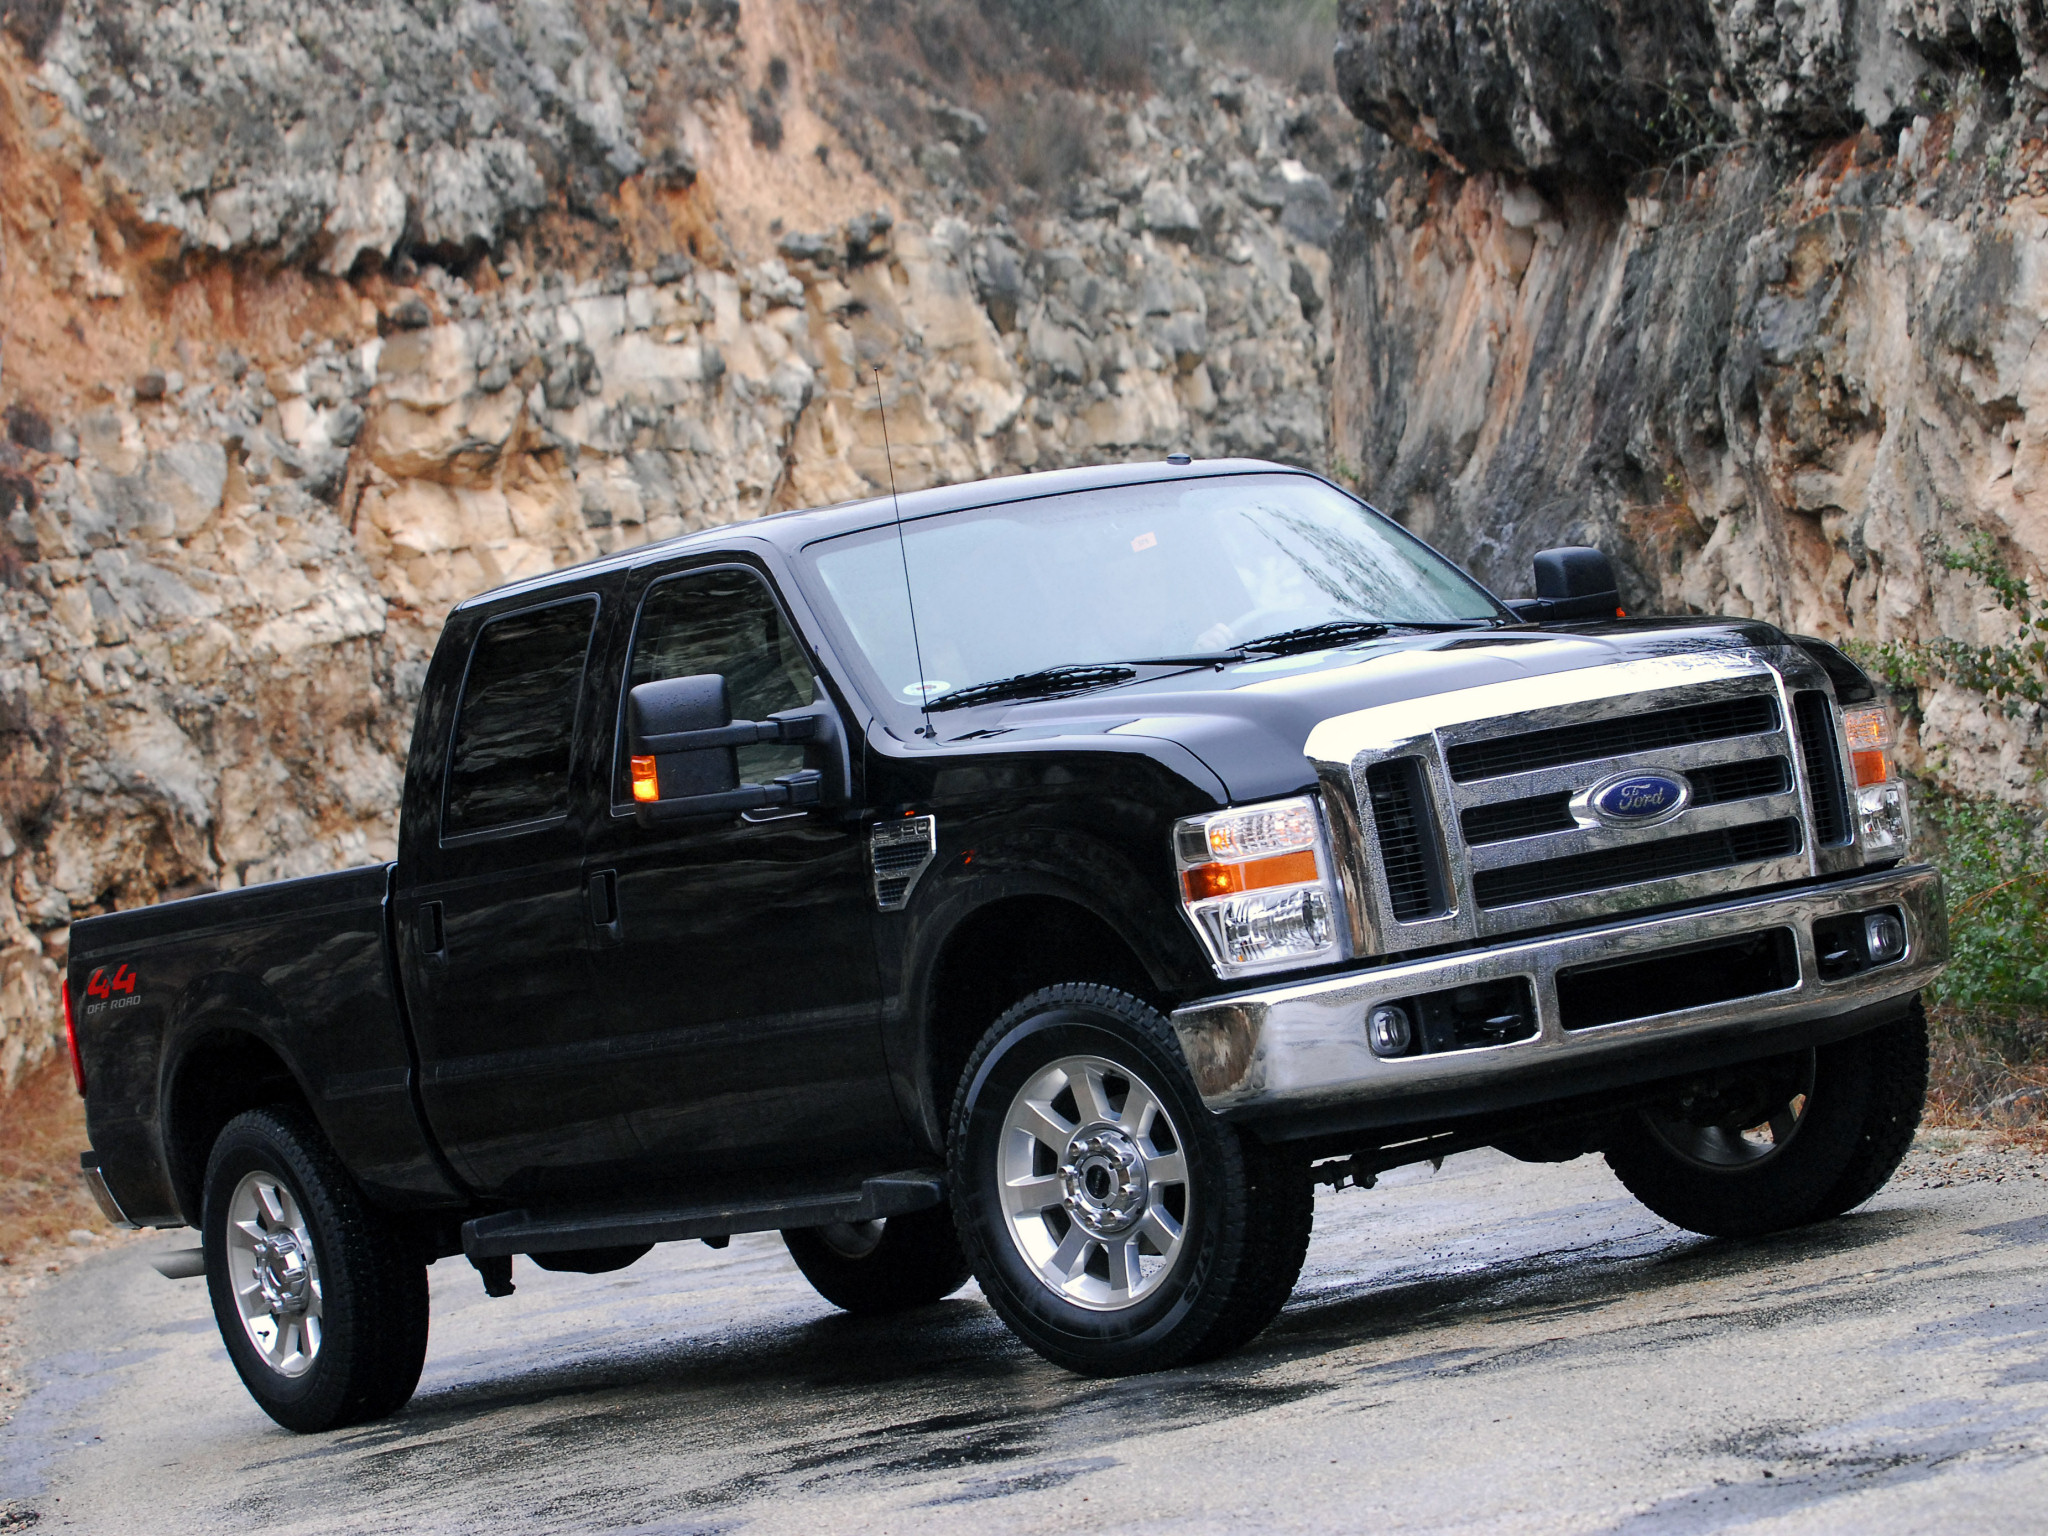 2008 Ford F 250 SuperDuty truck 4x4 g wallpaper background 2048x1536